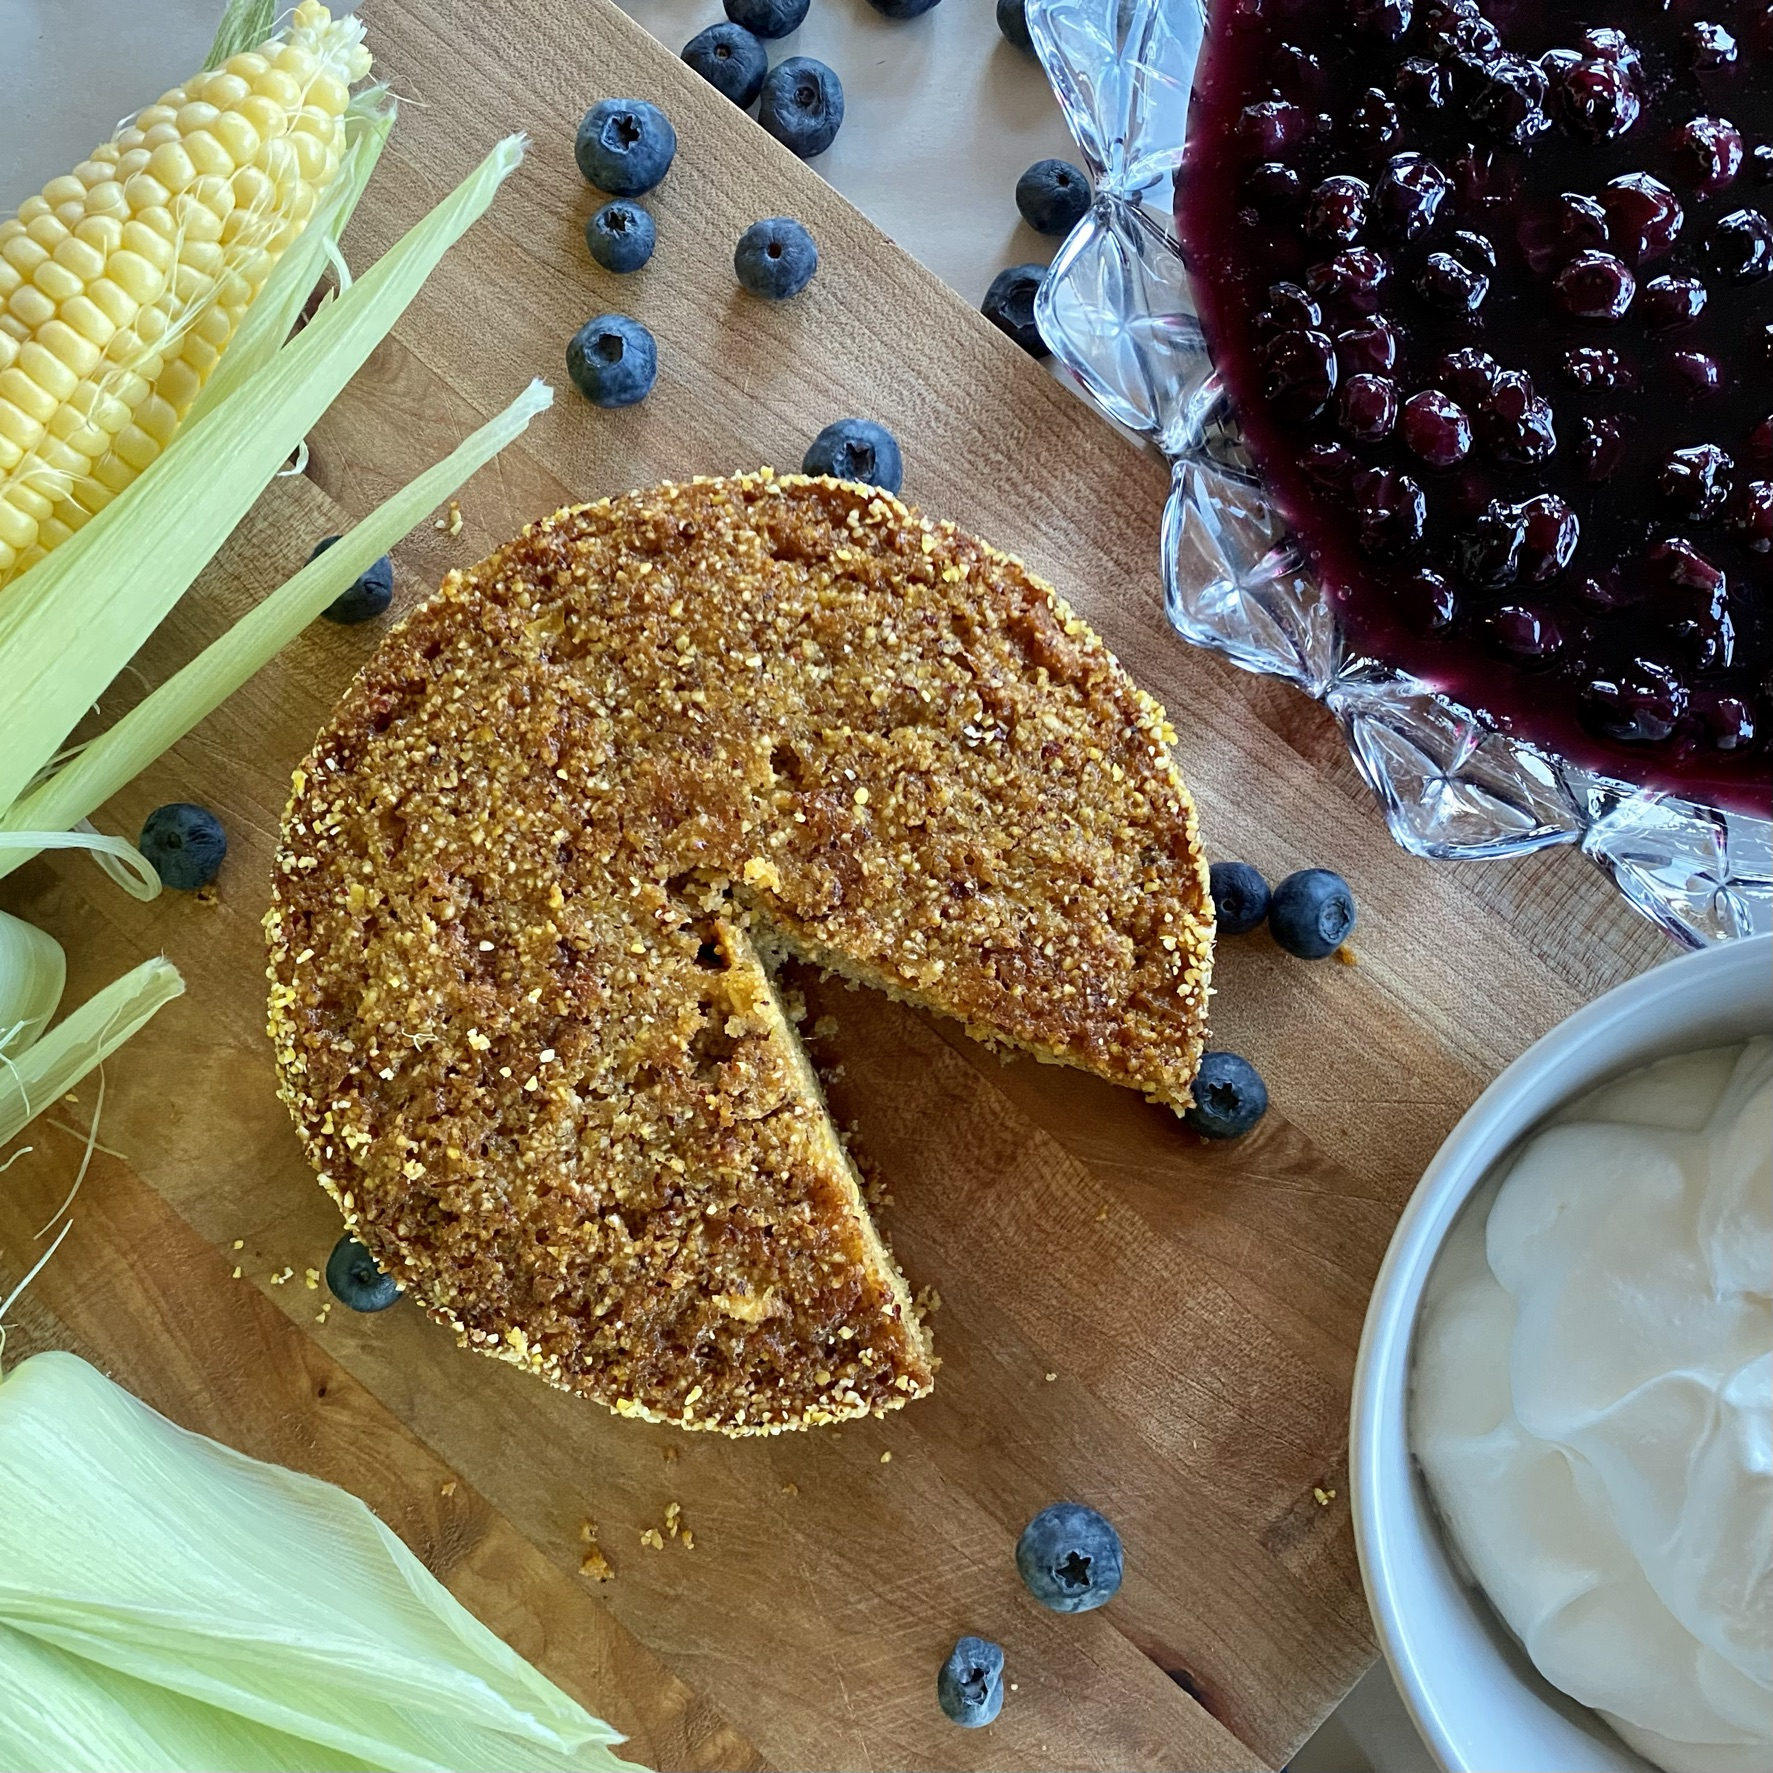 sweet corn buttermilk cake with bowl of blueberry compote